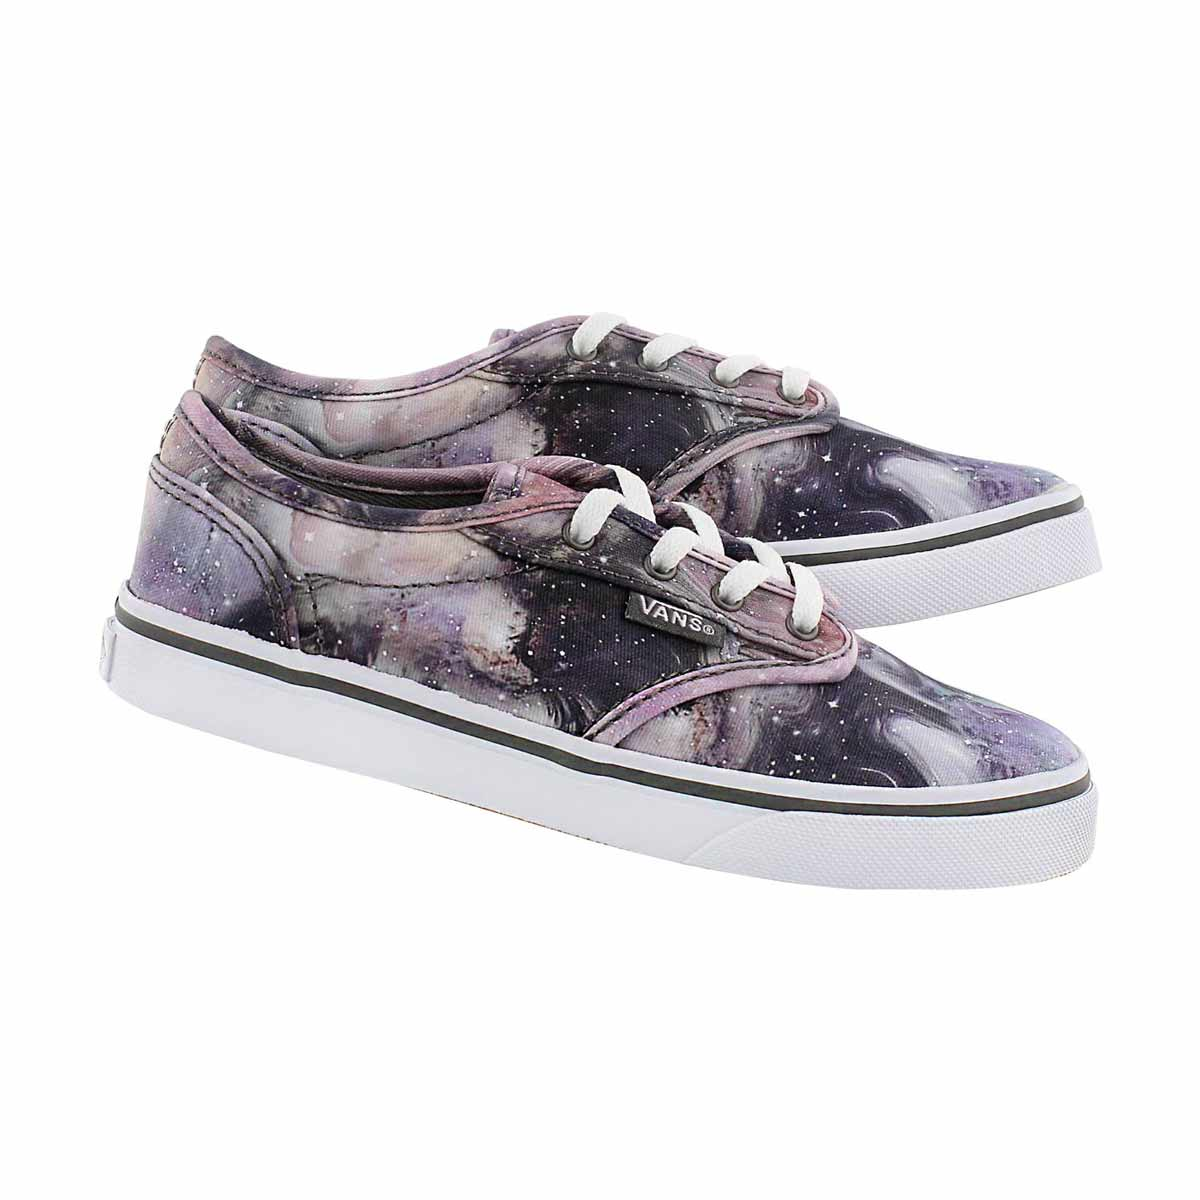 Grls Atwood Low galaxy lace up sneaker